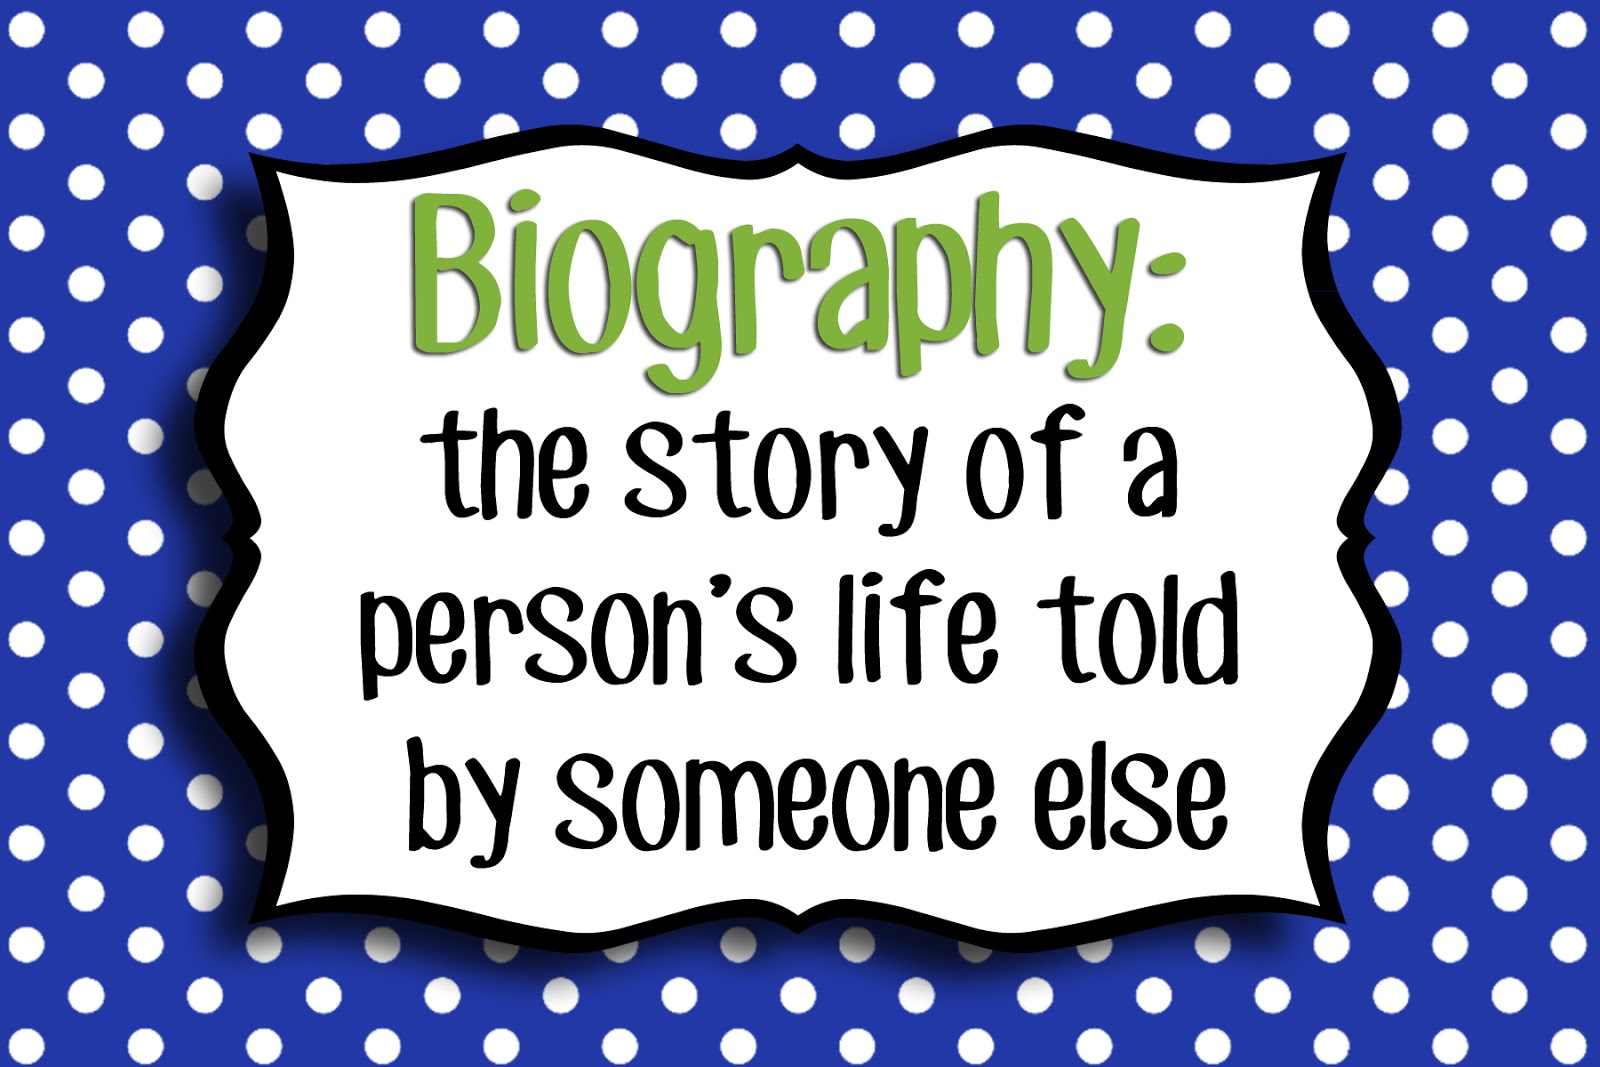 literary autobiography Review example of autobiography from some successful life stories autobiographies do more than tell the author's life story they provide documentary records of historical events and provide a family record for future generations.